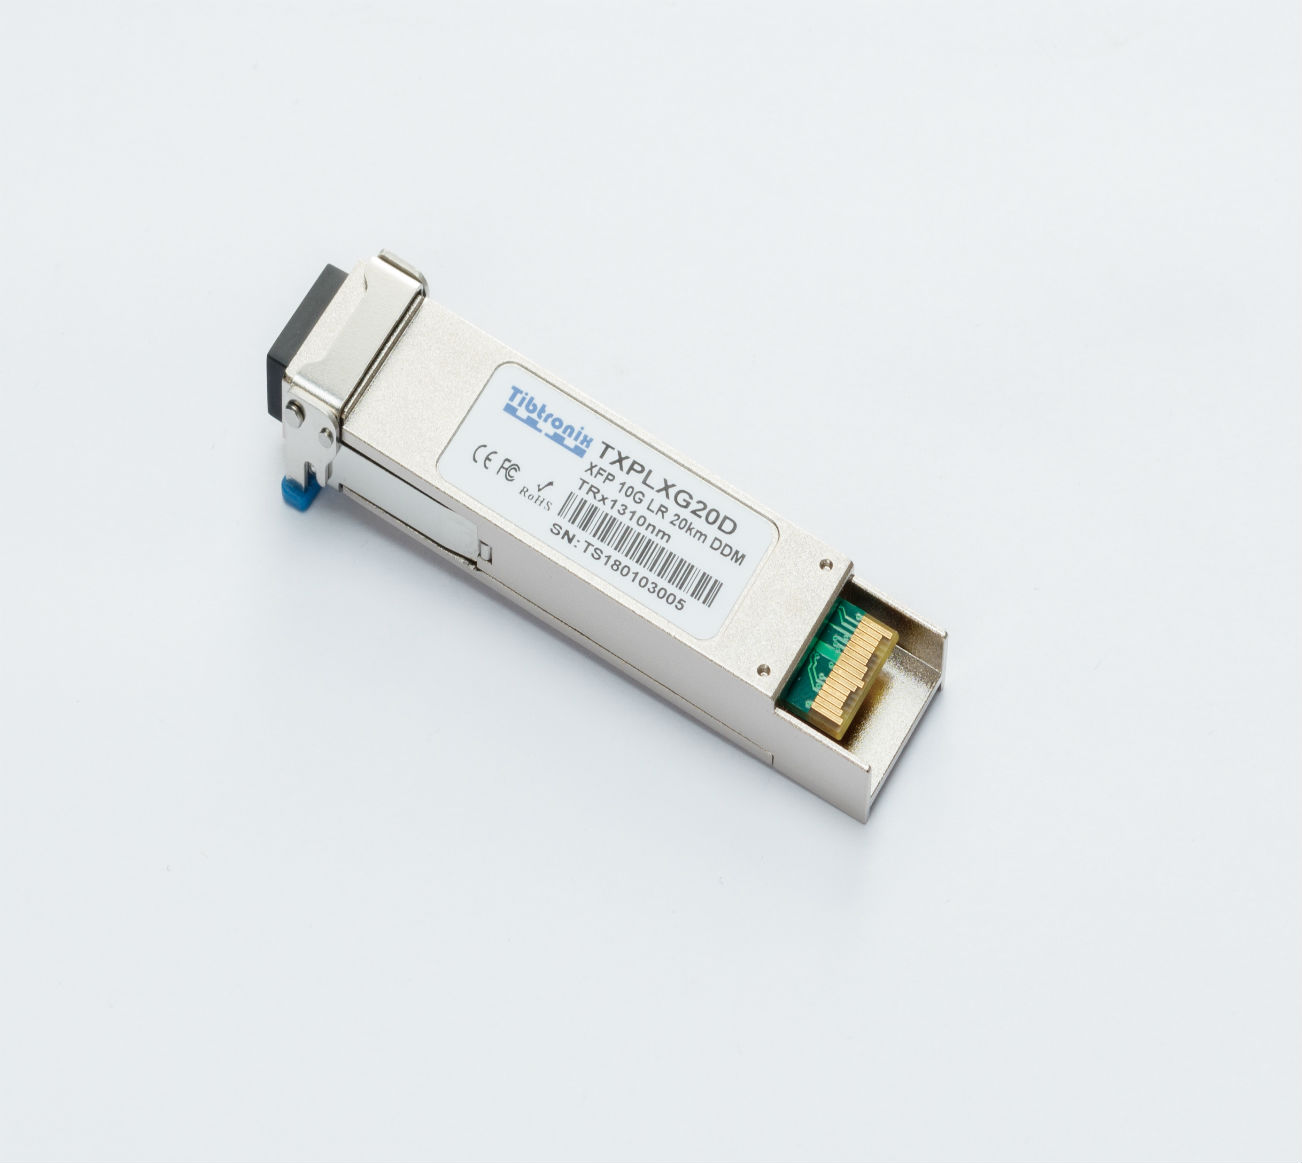 10GBASE-LRM XFP 1310nm 220m DDM Transceiver40GBASE-SR Bi-Directional Duplex LC Transceiver